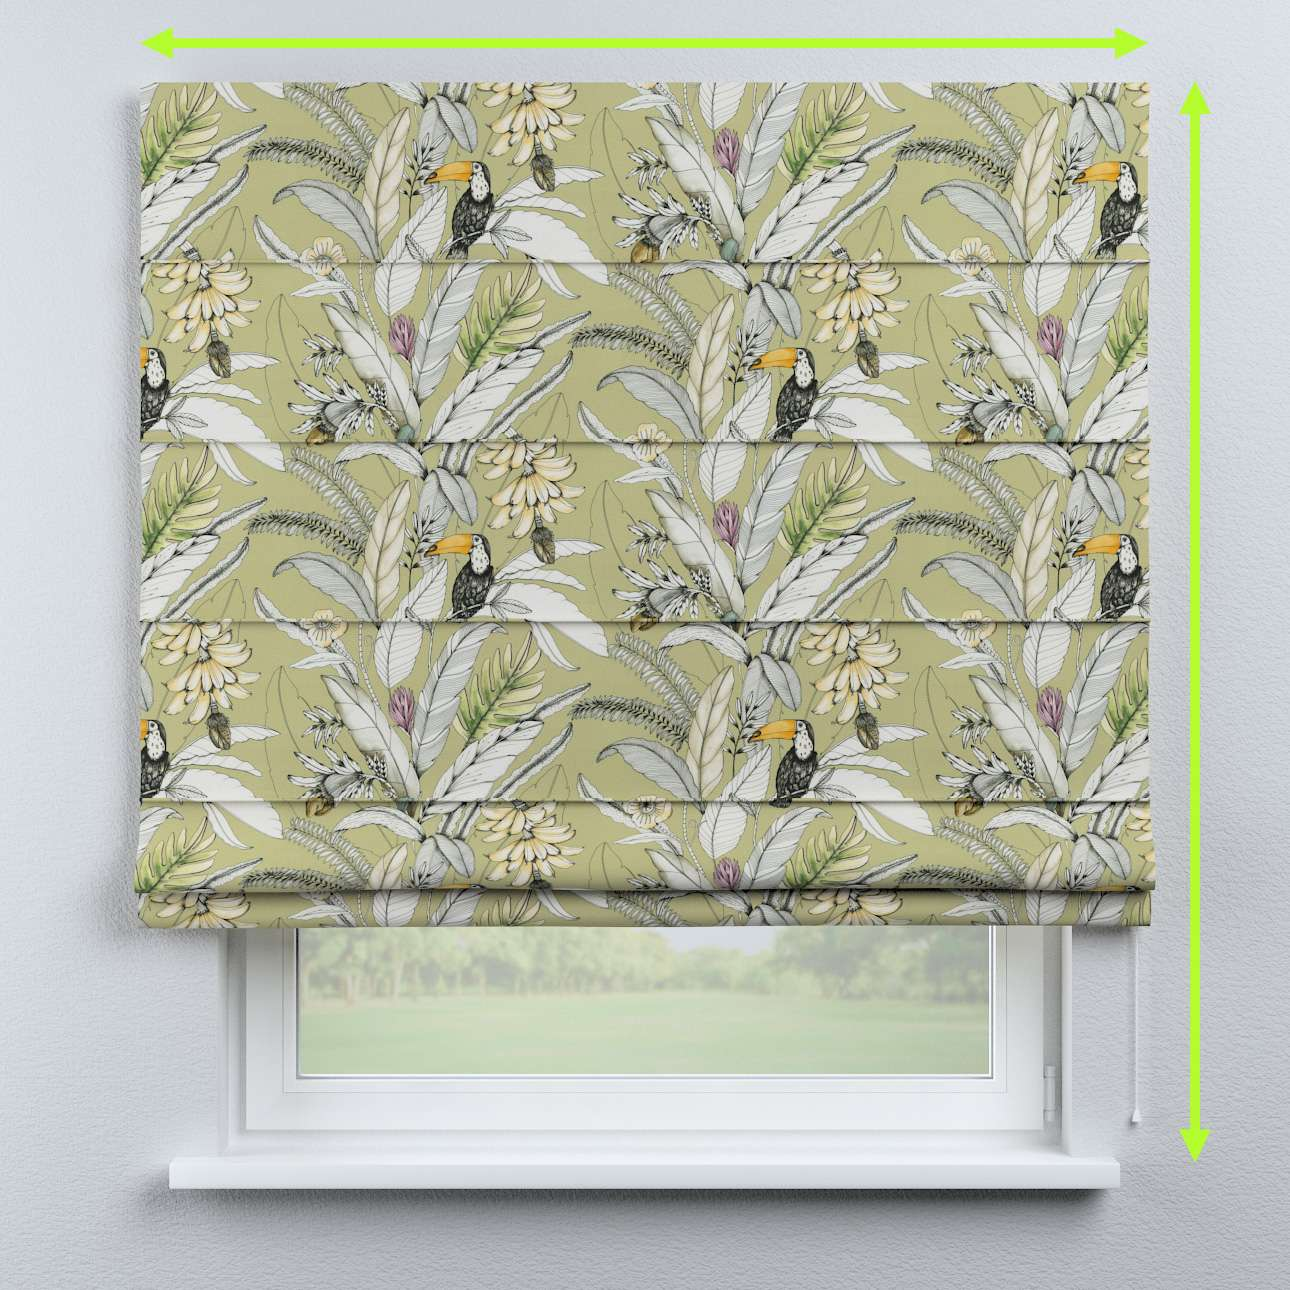 Capri roman blind in collection Tropical Island, fabric: 142-65